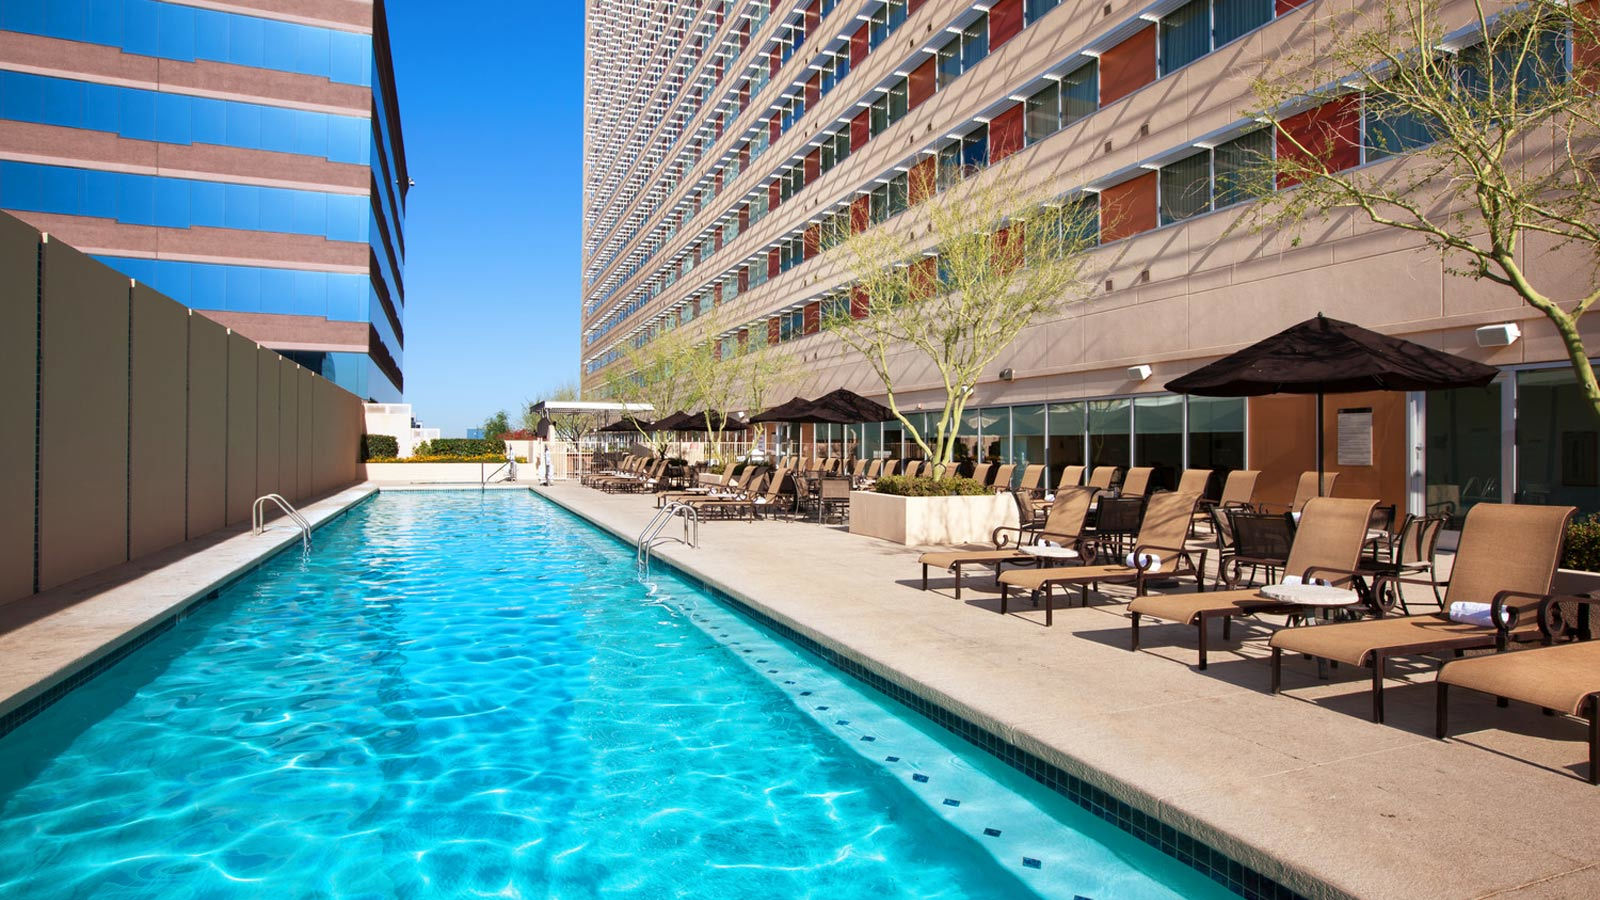 Hotels Near Asu Downtown Pool